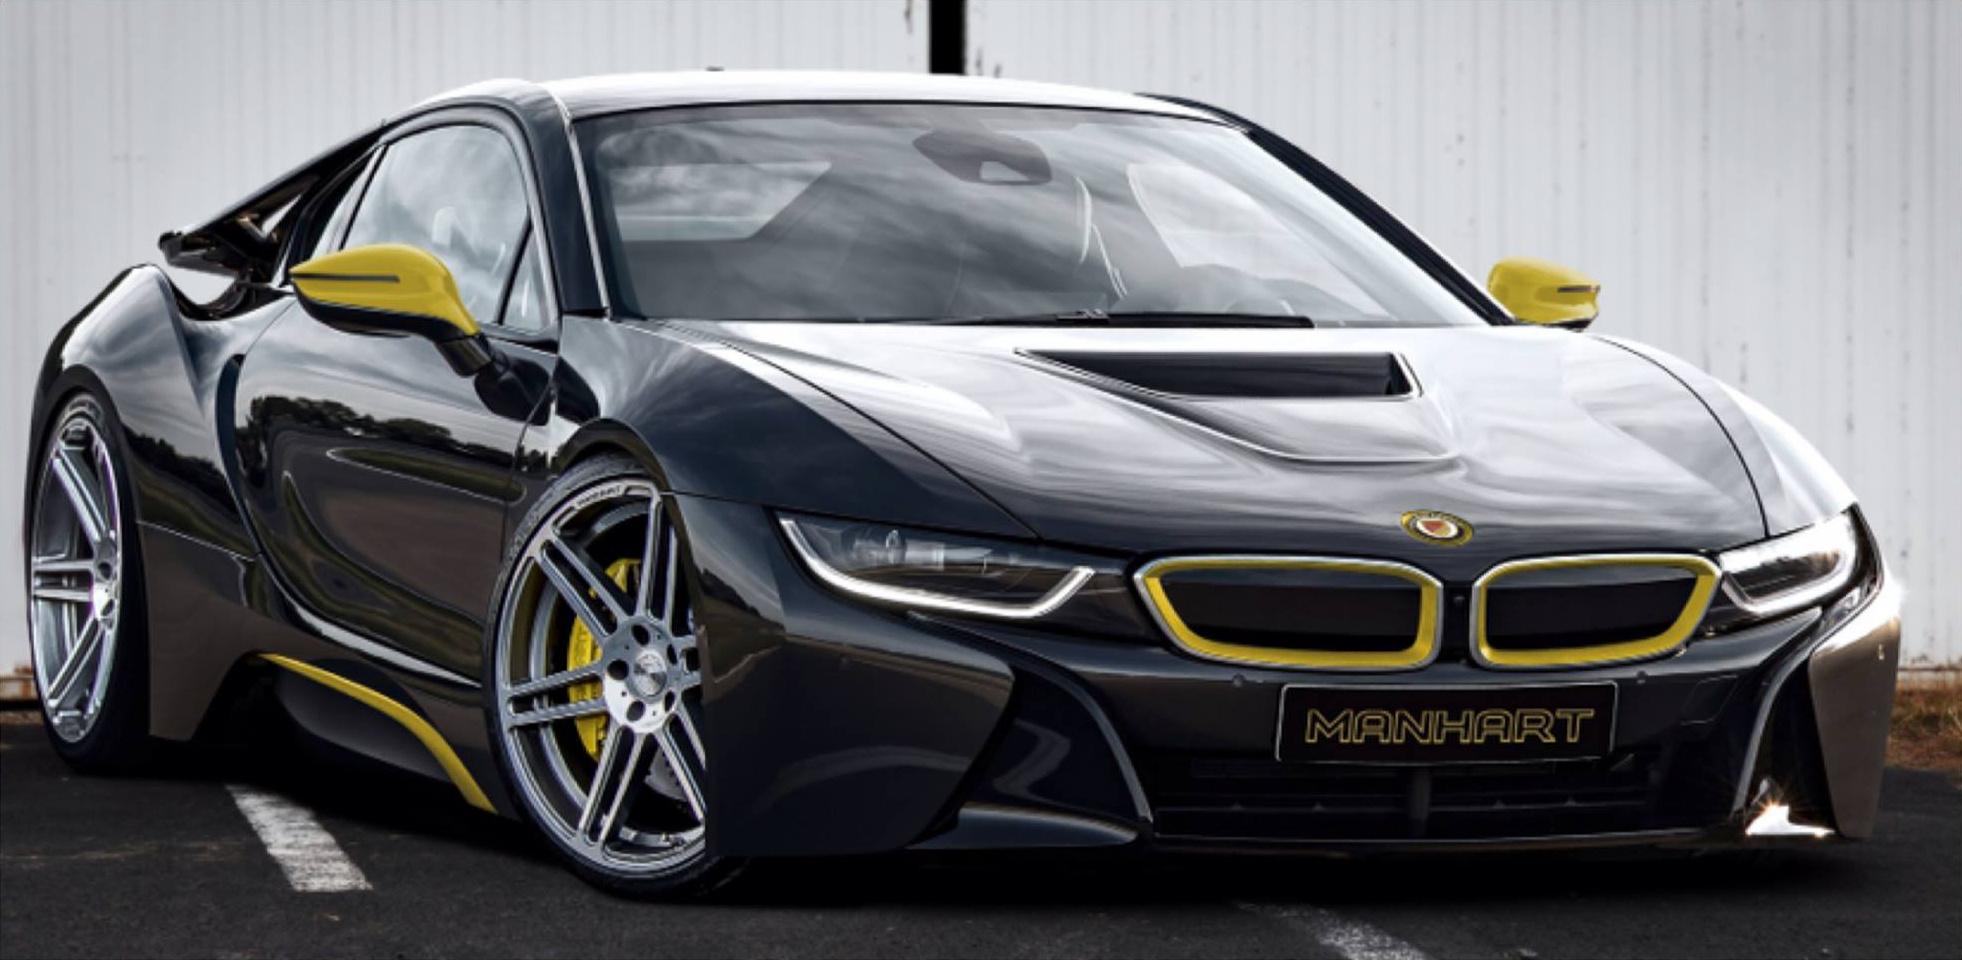 manhart bmw i8 tuning paket f r plug in hybrid in arbeit. Black Bedroom Furniture Sets. Home Design Ideas